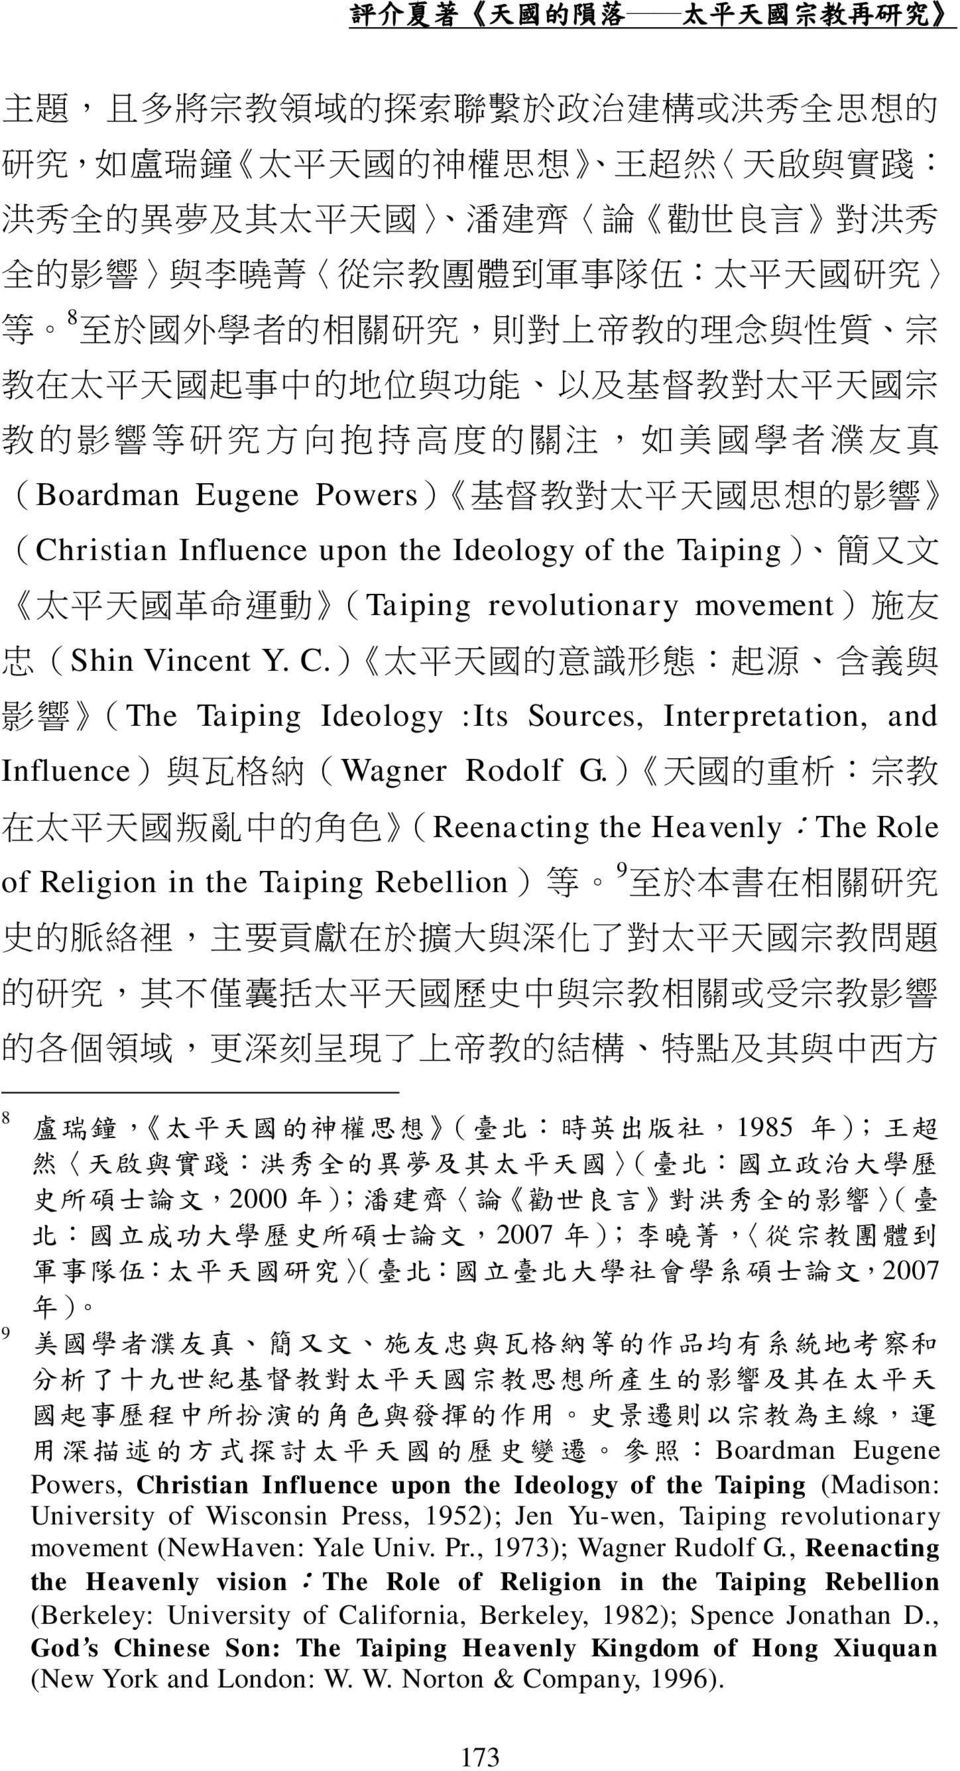 Eugene Powers) 基 督 教 對 太 平 天 國 思 想 的 影 響 (Christian Influence upon the Ideology of the Taiping) 簡 又 文 太 平 天 國 革 命 運 動 (Taiping revolutionary movement) 施 友 忠 (Shin Vincent Y. C.